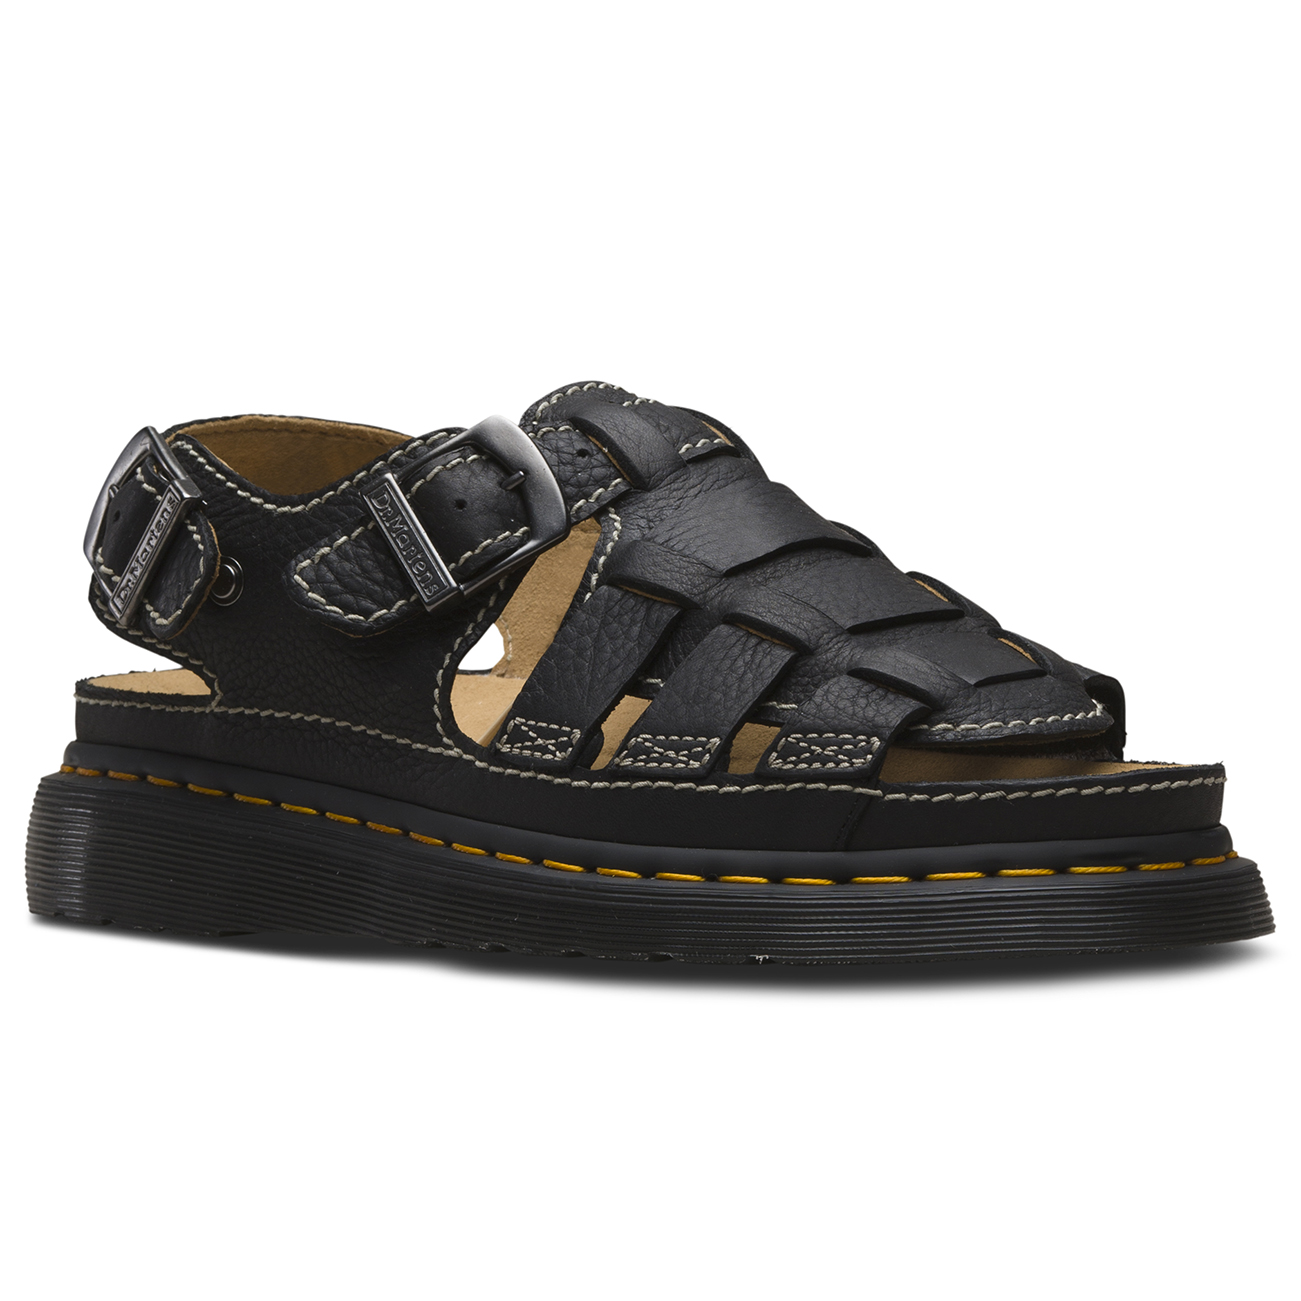 Unisex Adults Dr Martens 8092 Archive